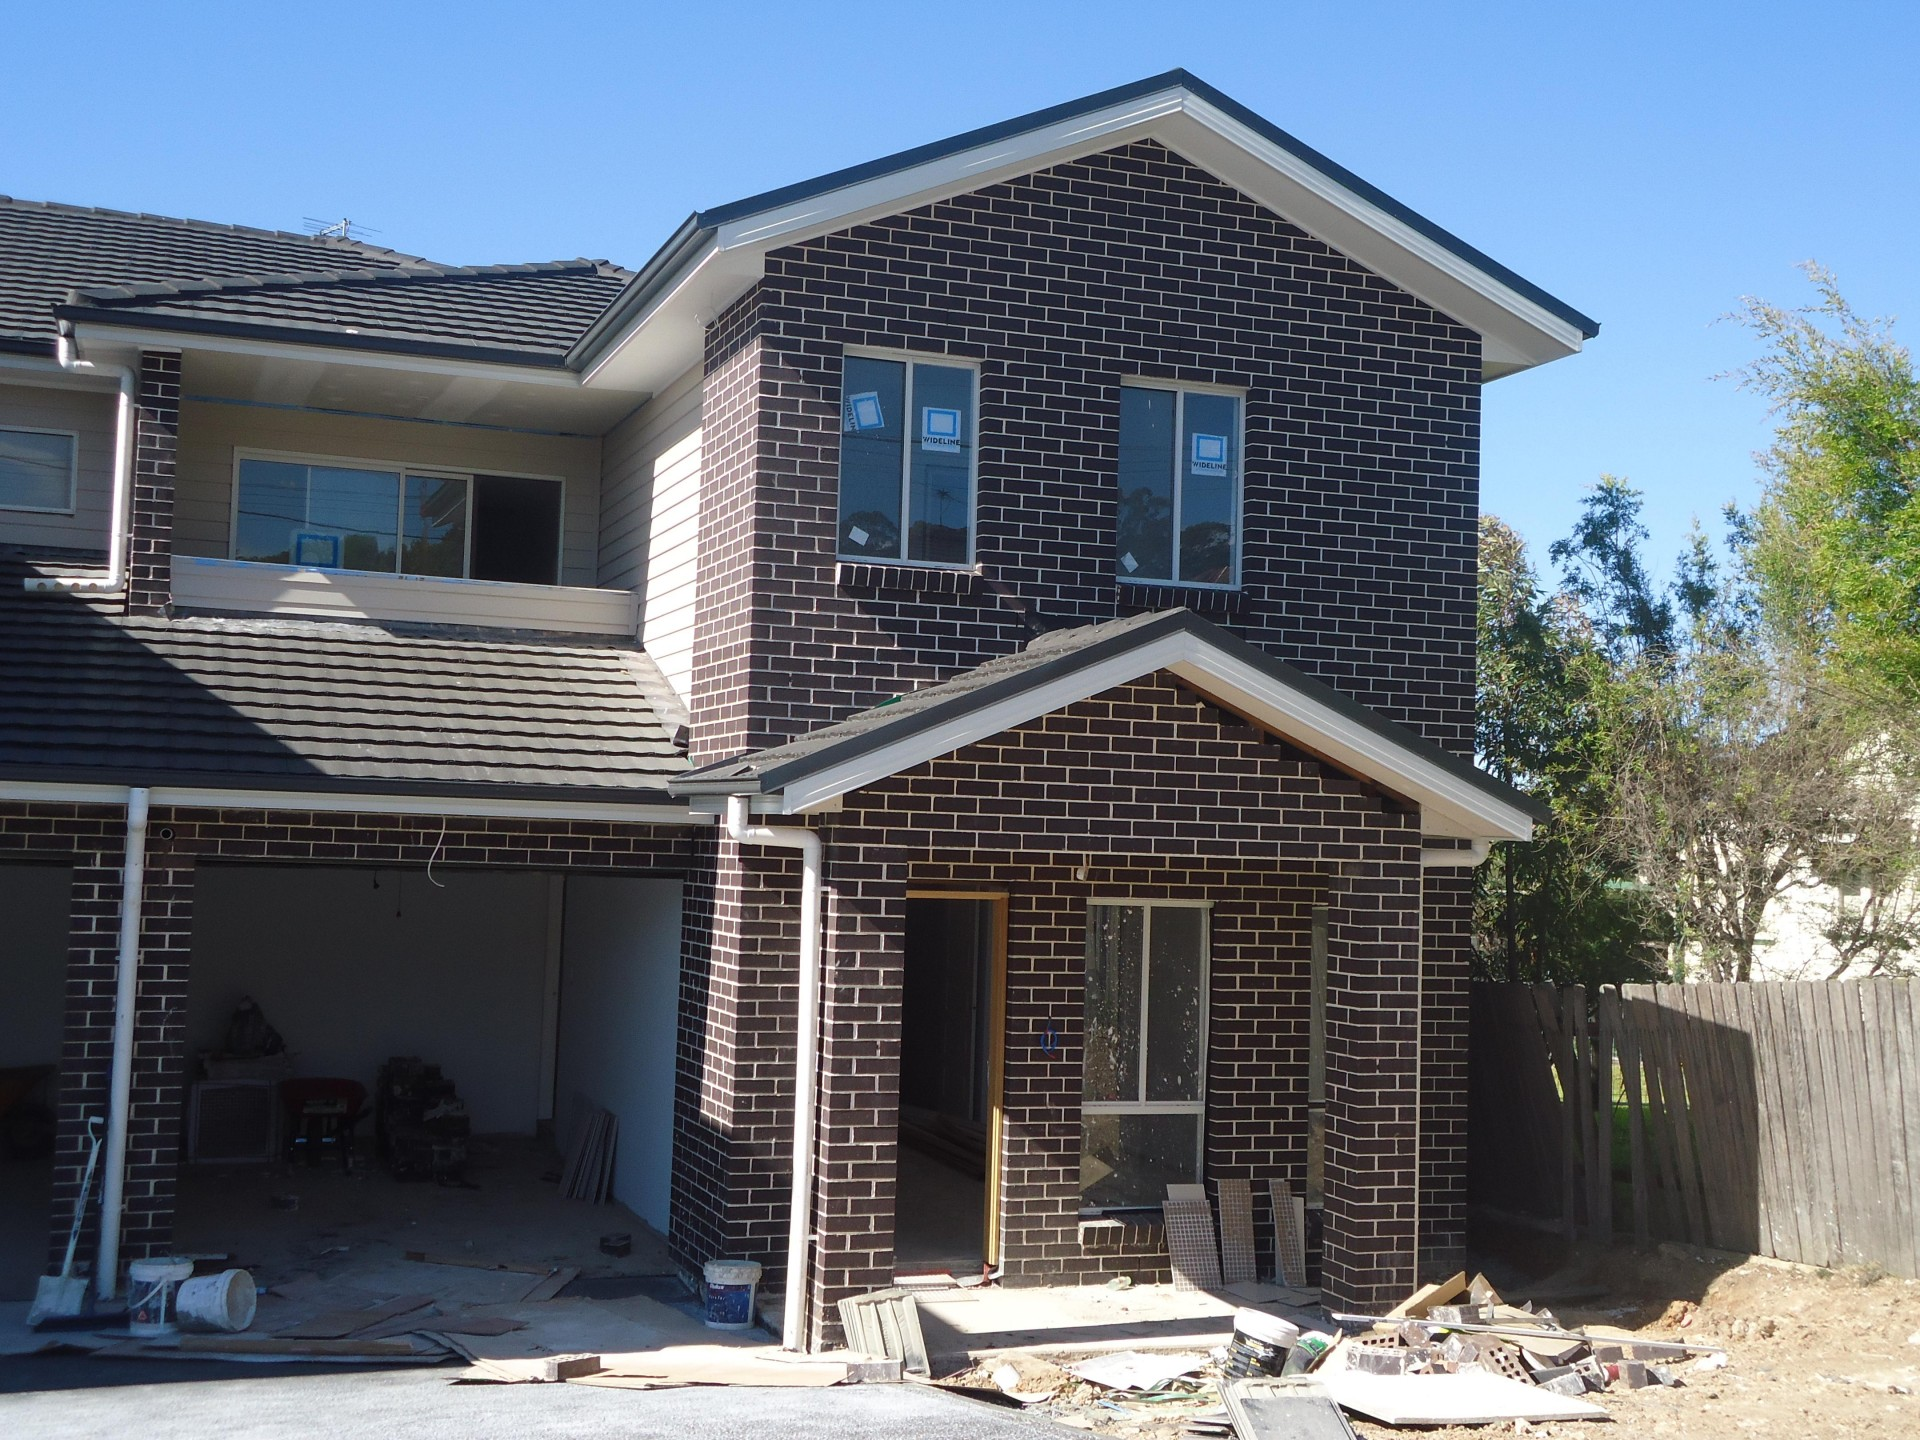 Ducted Air Conditioning & Large Back Yard